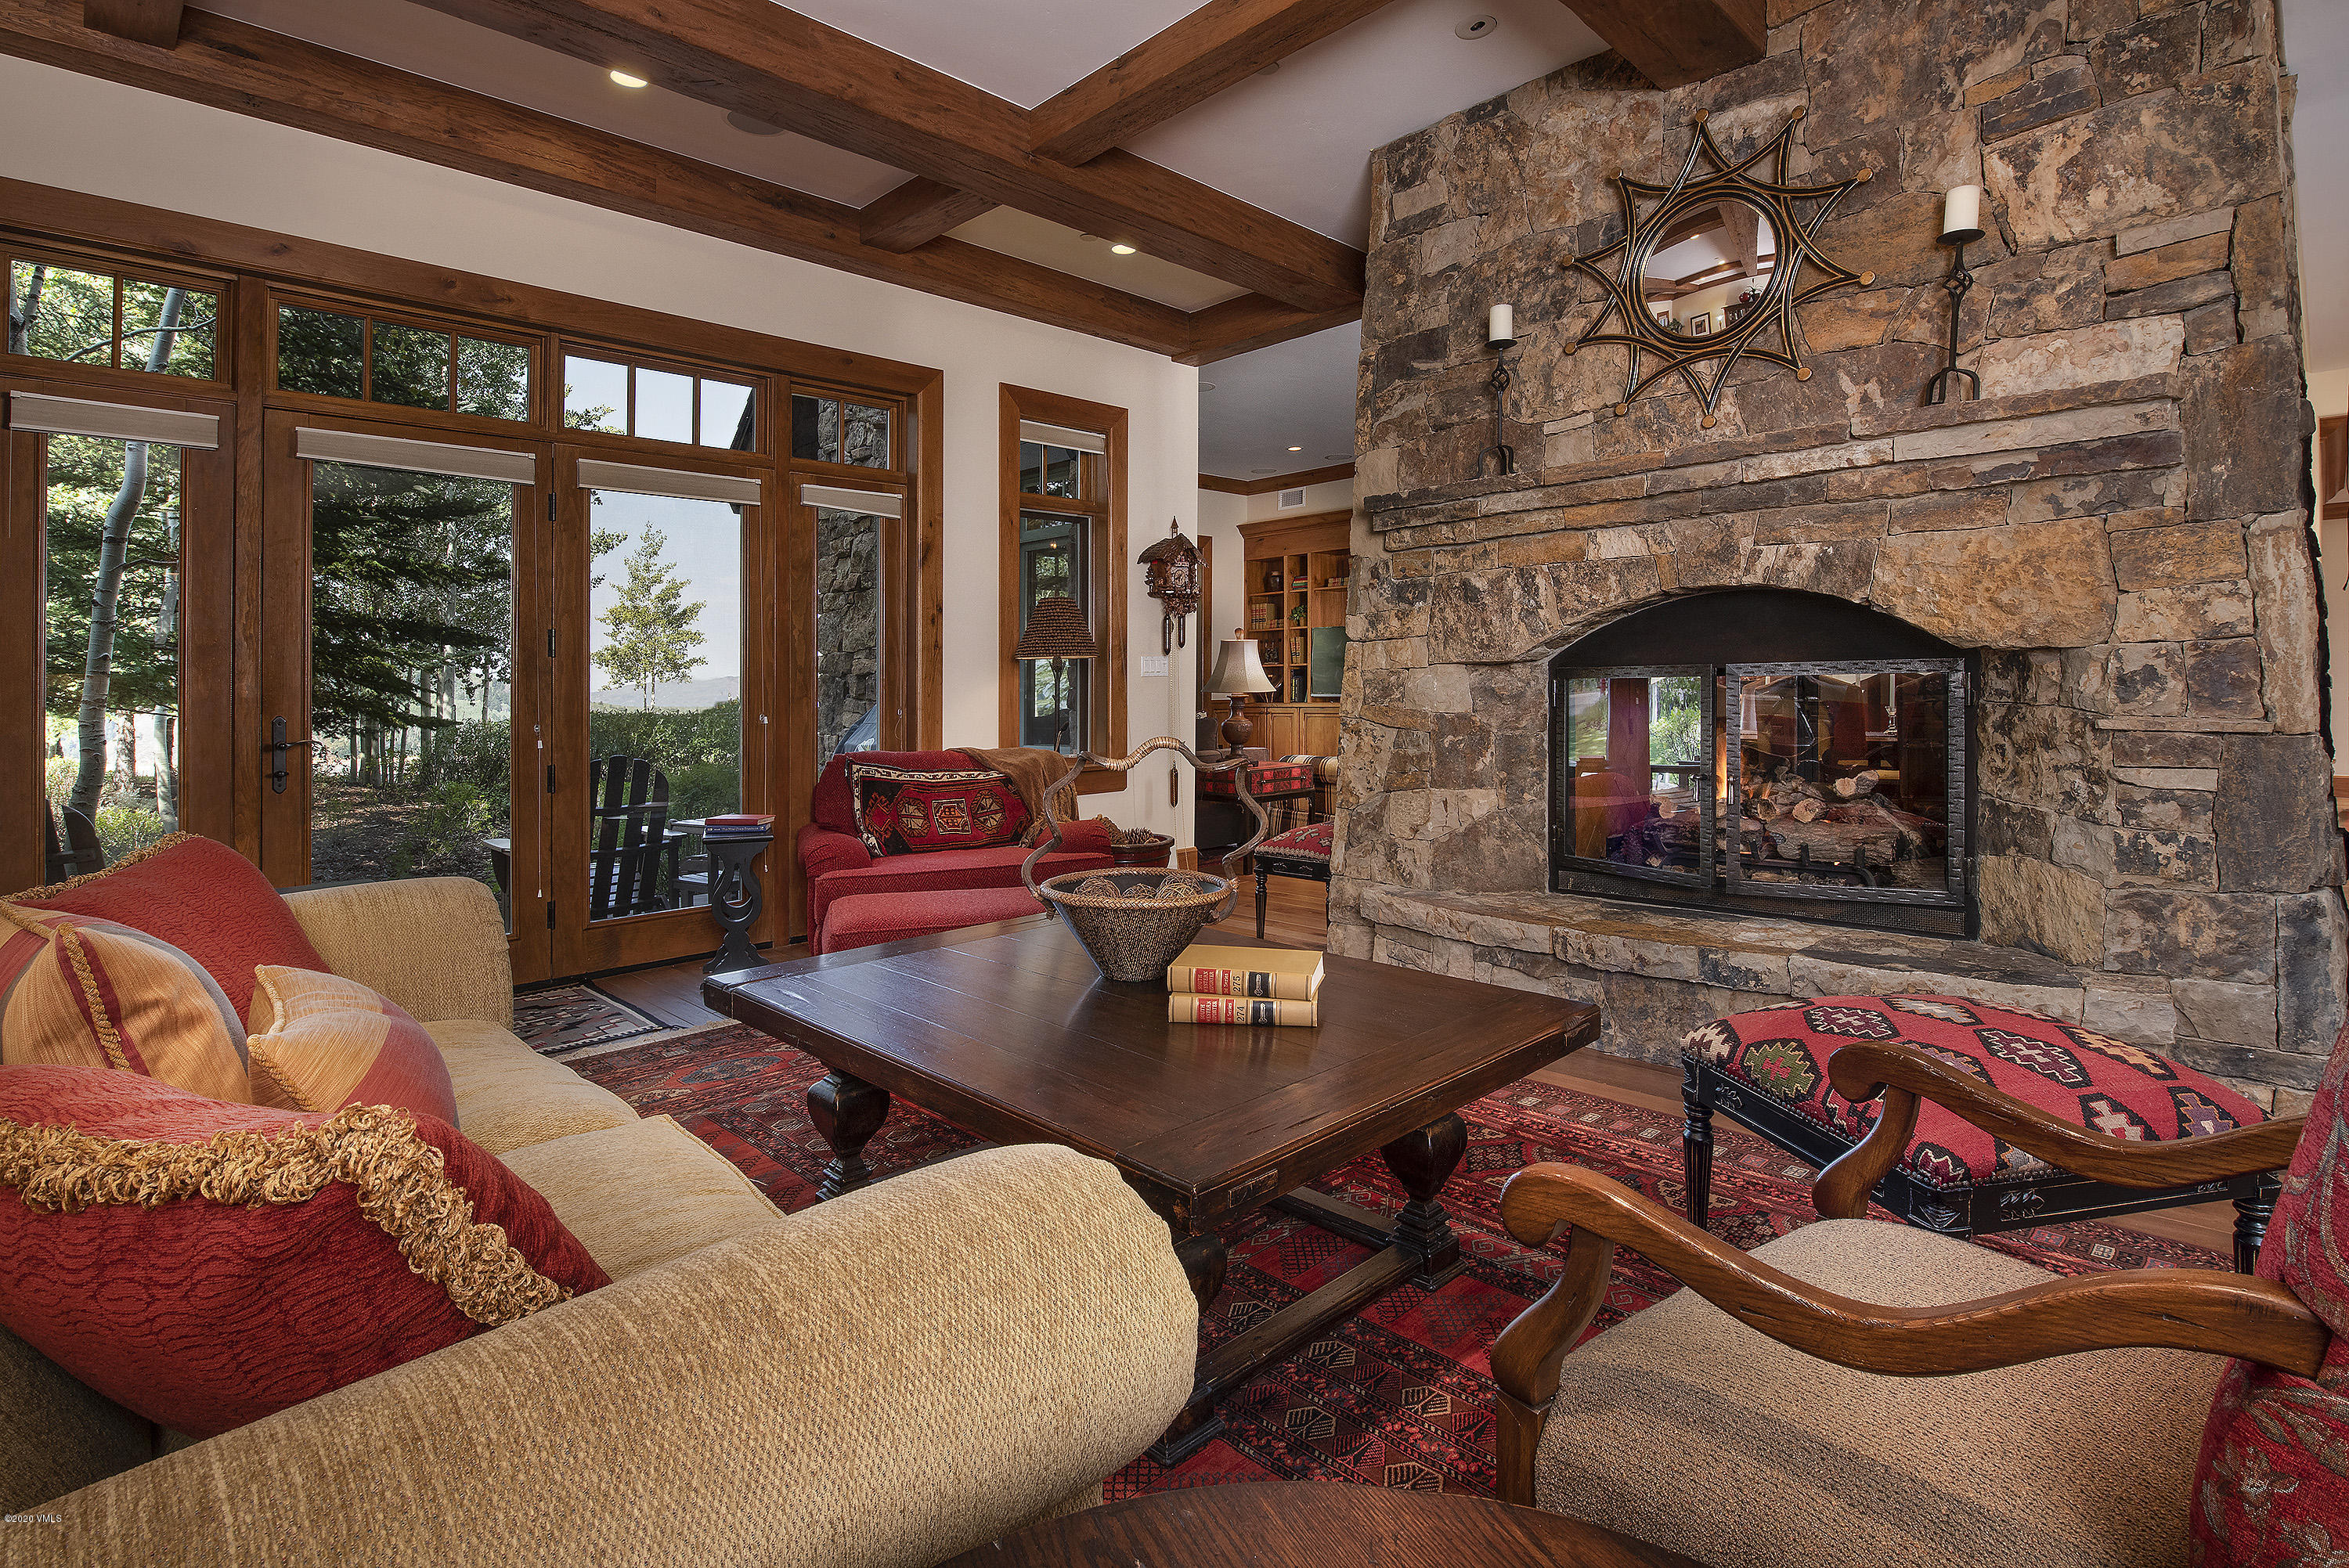 Stay home in style in this sophisticated Horizon Pass Lodge residence -- an iconic Bachelor Gulch escape where rustic meets refined.  You'll find rich wood millwork and wainscoting, rough-hewn ceiling timbers, polished granite countertops, crown molding throughout, and walls of windows framing westerly alpine views. Home is where the hearth is, and an enormous two-sided stone fireplace warms and anchors the gathering spaces. The open floor plan flows over 2500 sun-lit square feet with three spacious bedrooms and three luxurious bathrooms -- two with dual sinks. The well-appointed chef's kitchen includes a large island and a cooktop with custom butternut hood.  There are two wall ovens, two dishwashers, plenty of countertops, a bar niche, wine cooler, ice maker, and numerous cabinets offering both covered storage and open display. A comfortable den off the dining room features built-in bookcases and plenty of cabinet storage. Sliding glass doors open onto two buff flagstone patios and gardens--one off the main bedroom. This sophisticated space includes high ceilings, handsome wall coverings, attractive hardware, and ample closet space. The list of upgrades is long, all the high-end fixtures and finishes anticipated at this price point. This inspiring home in Bachelor Gulch invites homeowners to reconnect with one another and with the surrounding outdoors. Horizon Pass Lodge offers a generous amenities package. Step outside from the luxurious ski room and ski away on a lovely Bachelor Gulch groomed run. At the end of the day, ski right back in with ease for all levels. In the summer, these same trails make for incredible hiking just out the door. Soak in the year-round, heated outdoor pool or spa, take in brilliant views to the Gore Range. Lounge, game area, fitness center, front desk and concierge services meet the needs of an active mountain lifesty